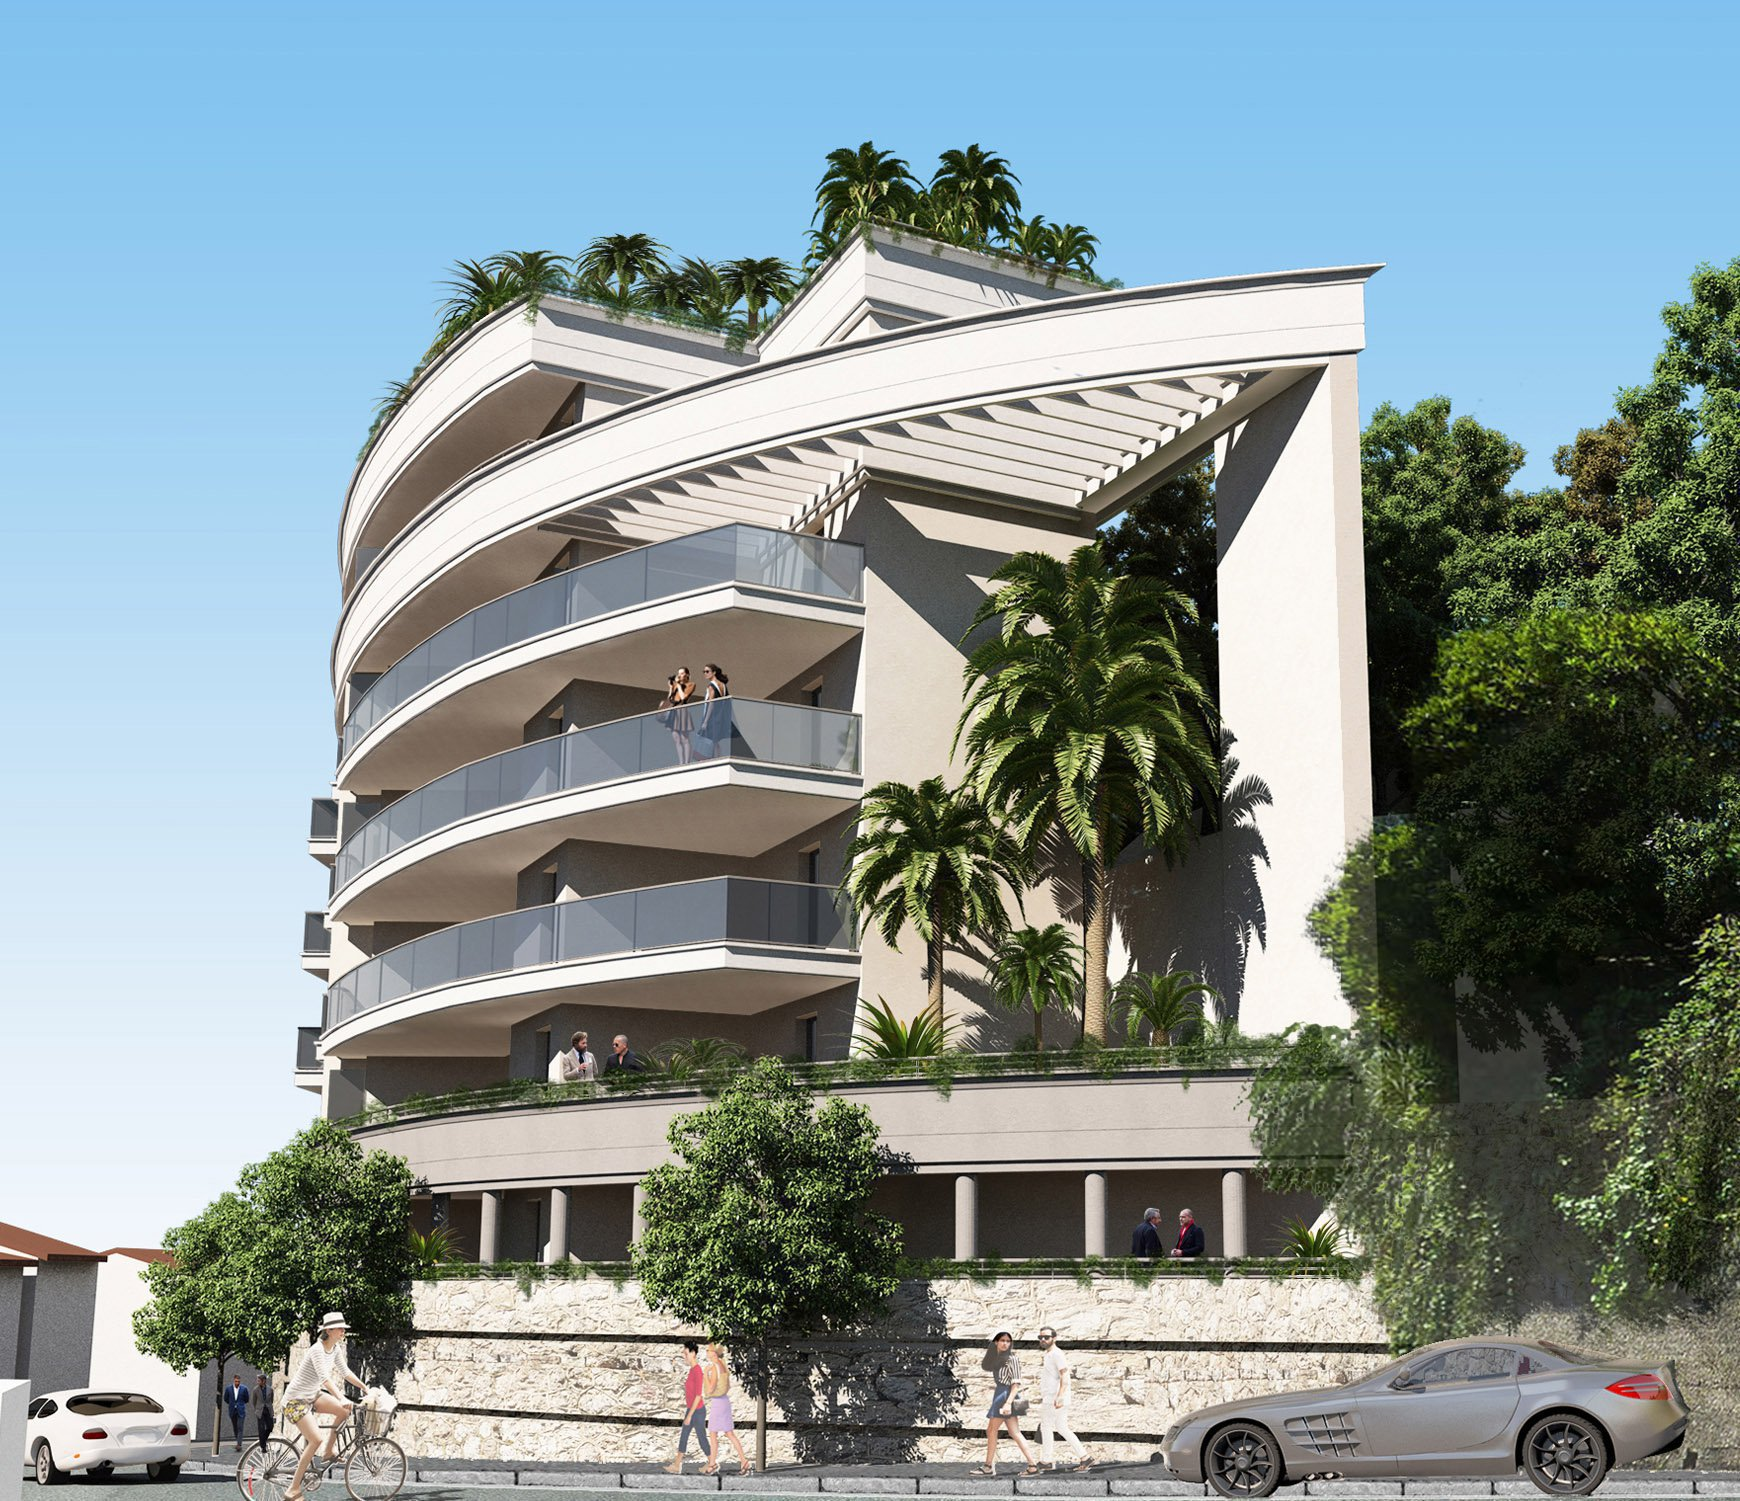 BEAUSOLEIL - Frecnh Riviera - Luxury 2 Bed - Top floor - Sea view and large terrace